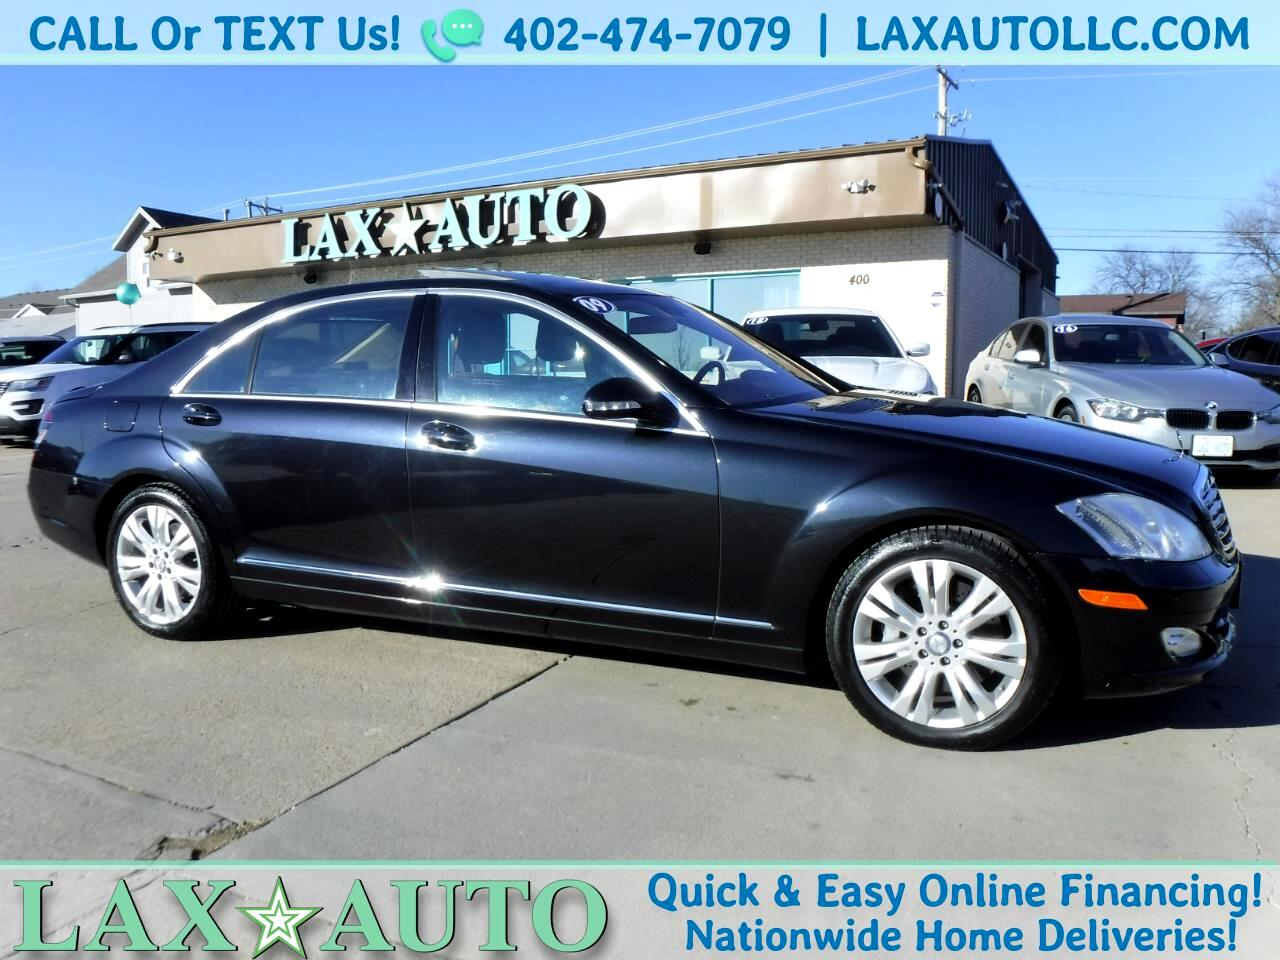 2009 Mercedes-Benz S-Class S550 4MATIC Luxury Sedan * Only 74k Miles!